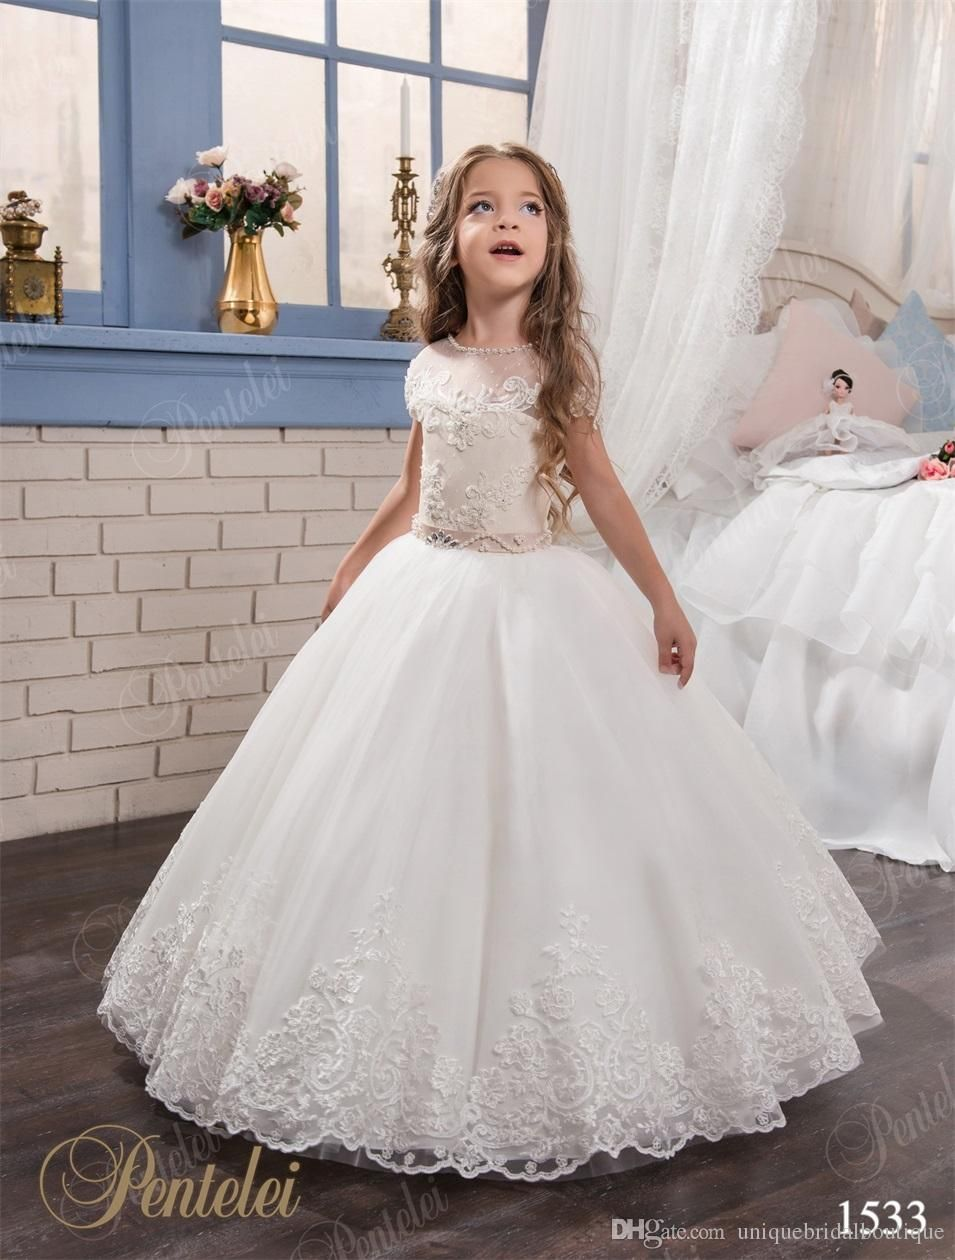 Girls Bride Dresses